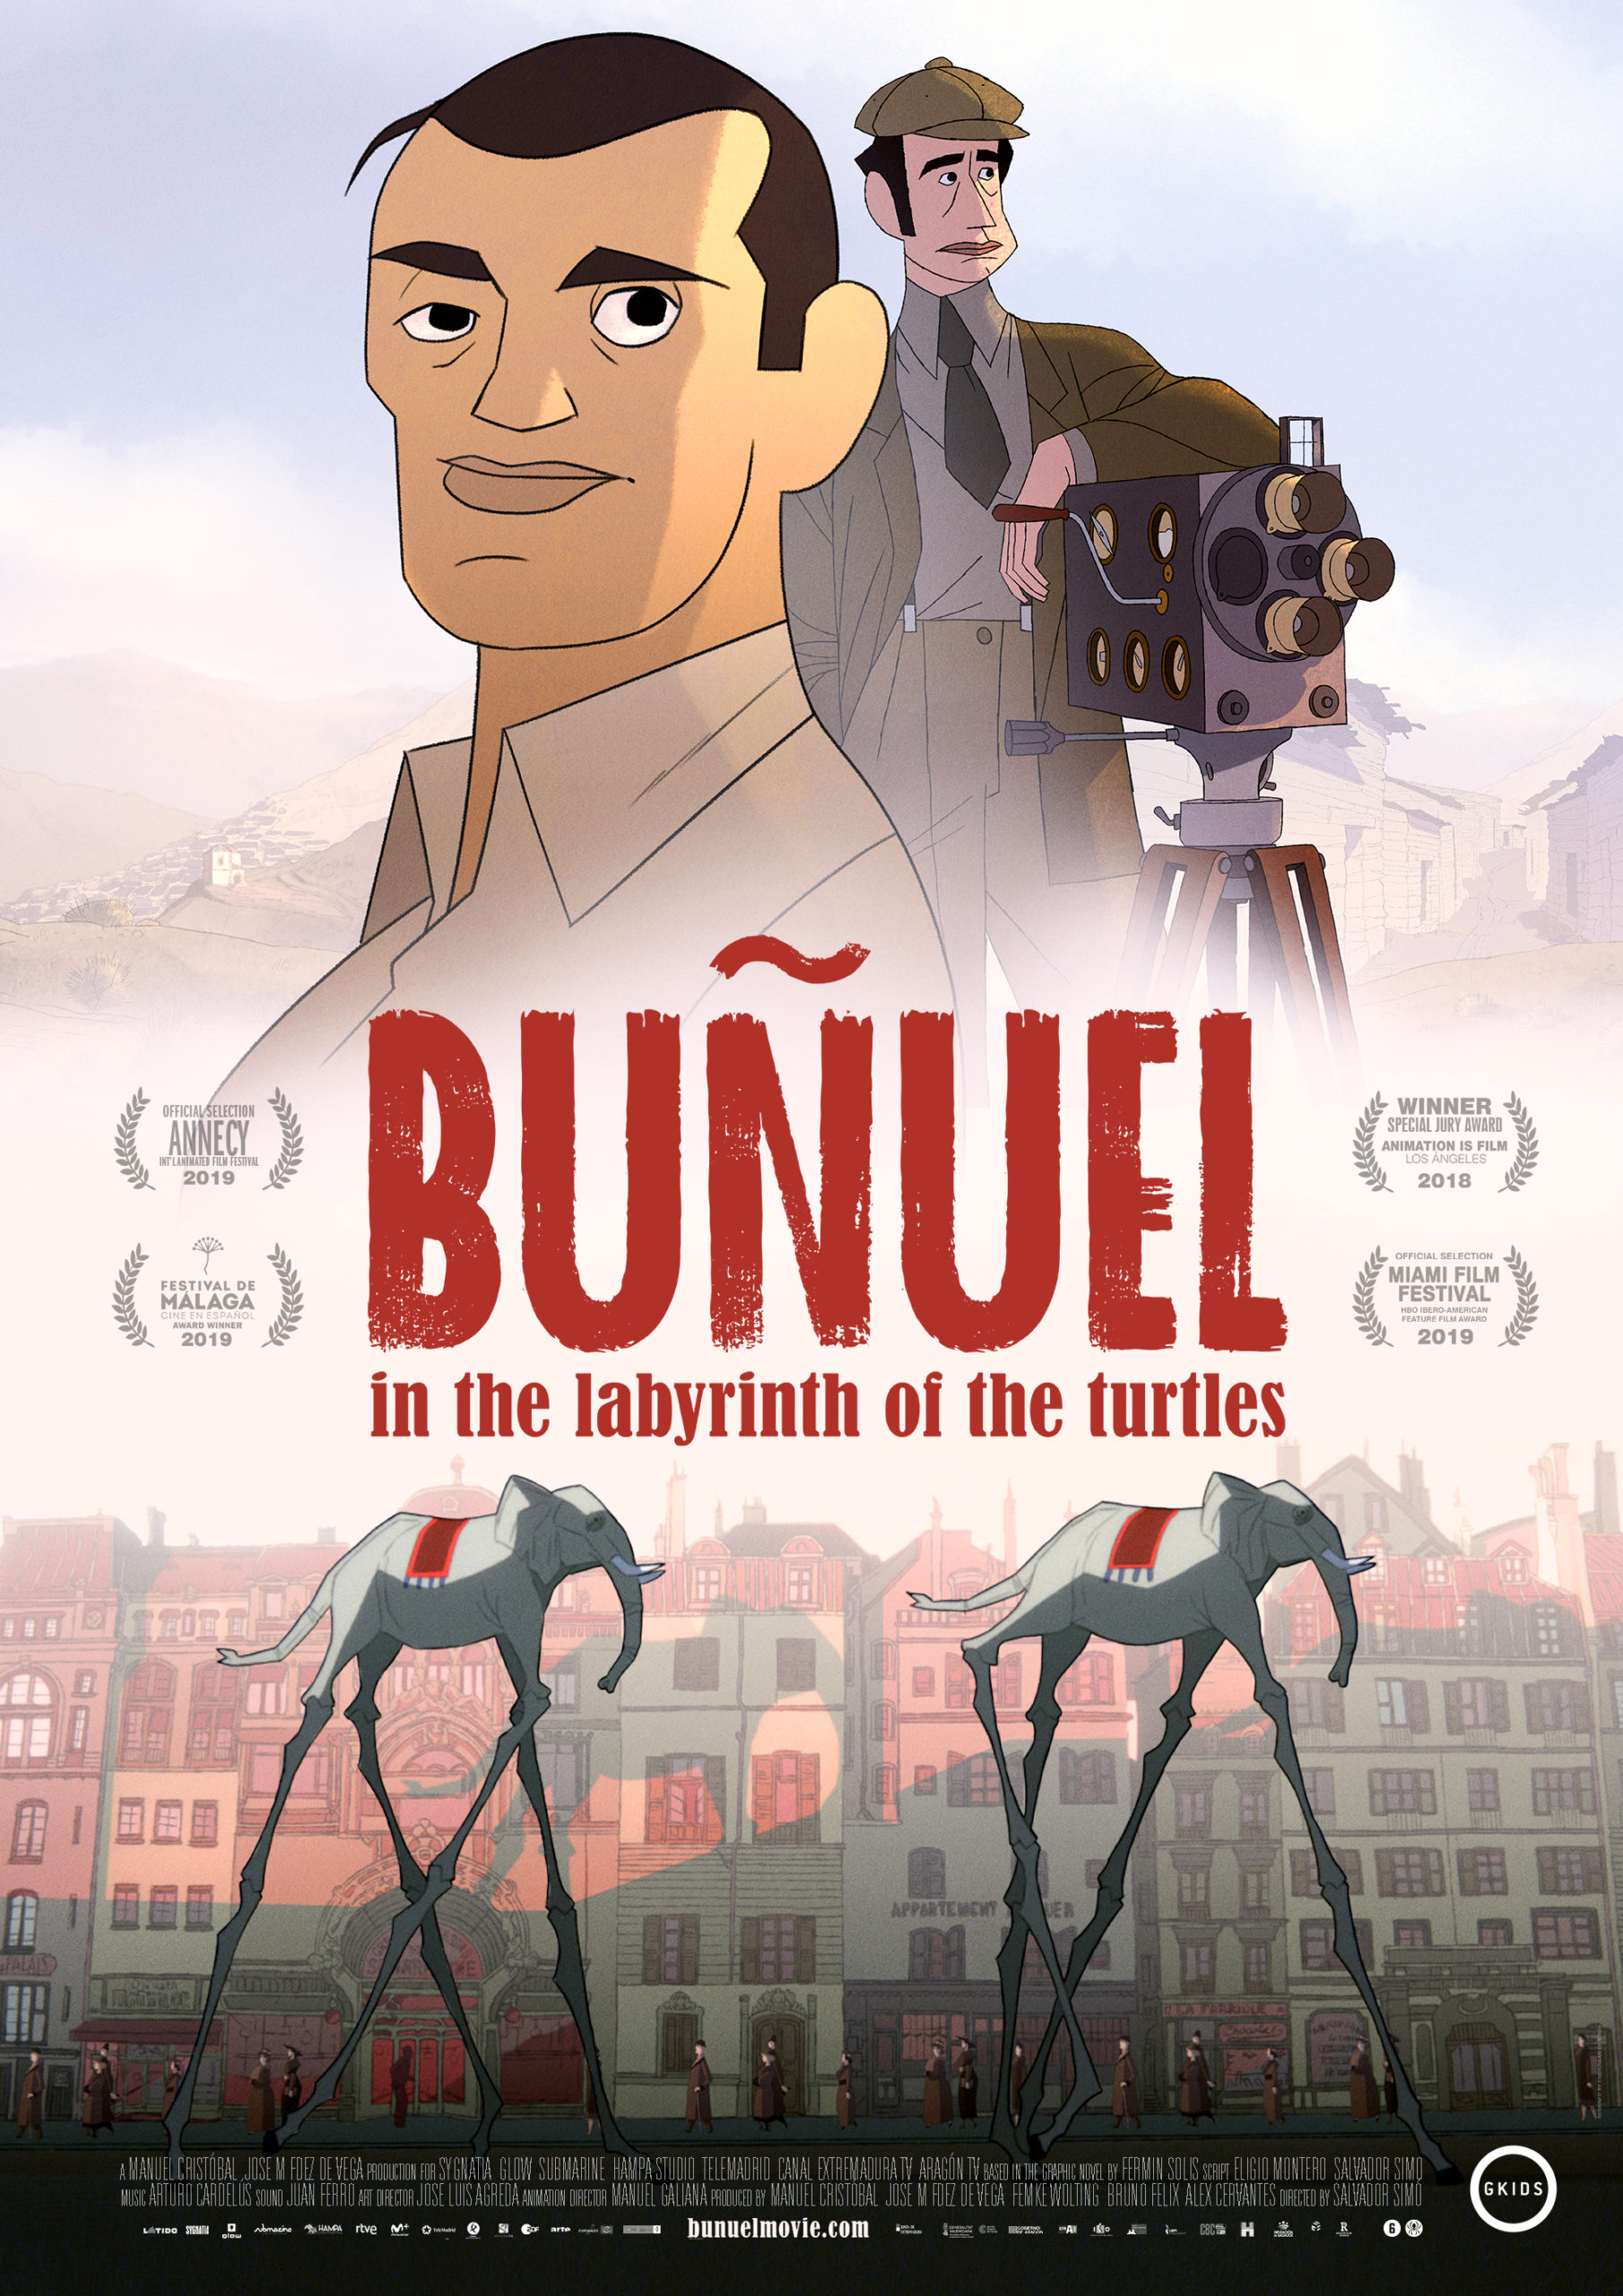 Buñuel in the labrinth of turtles